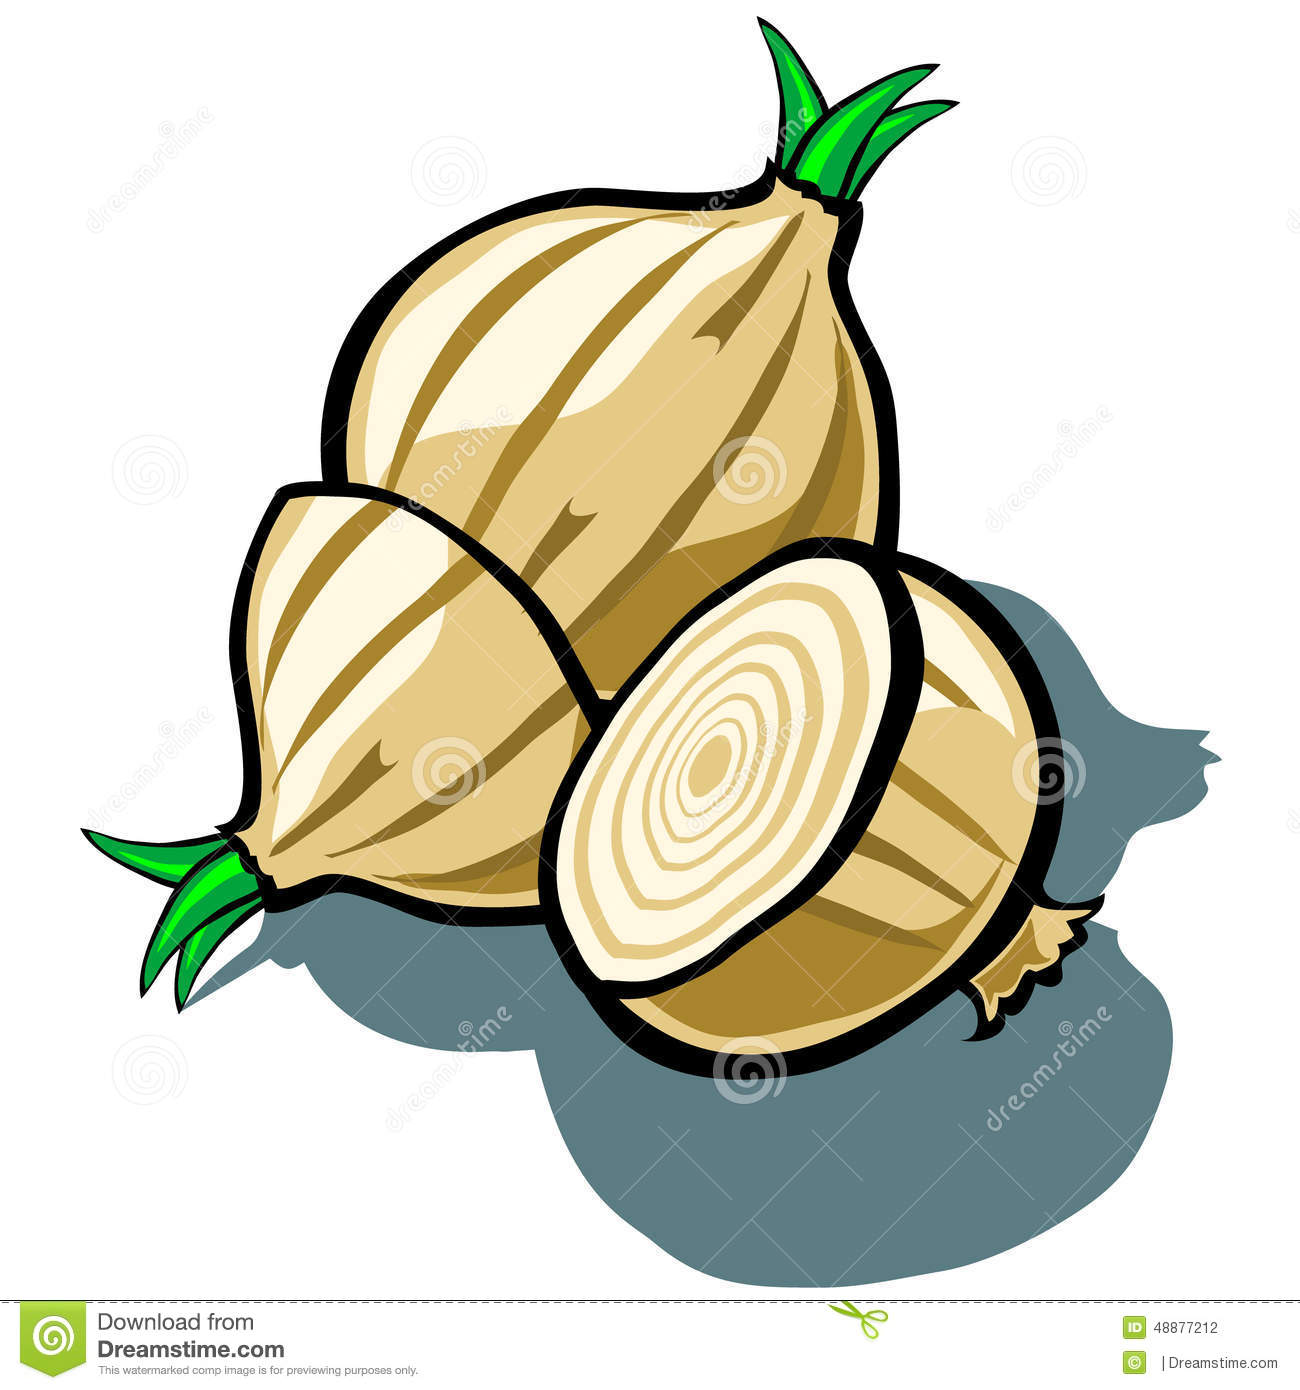 Onion and Slice stock vector. Illustration of nature ...